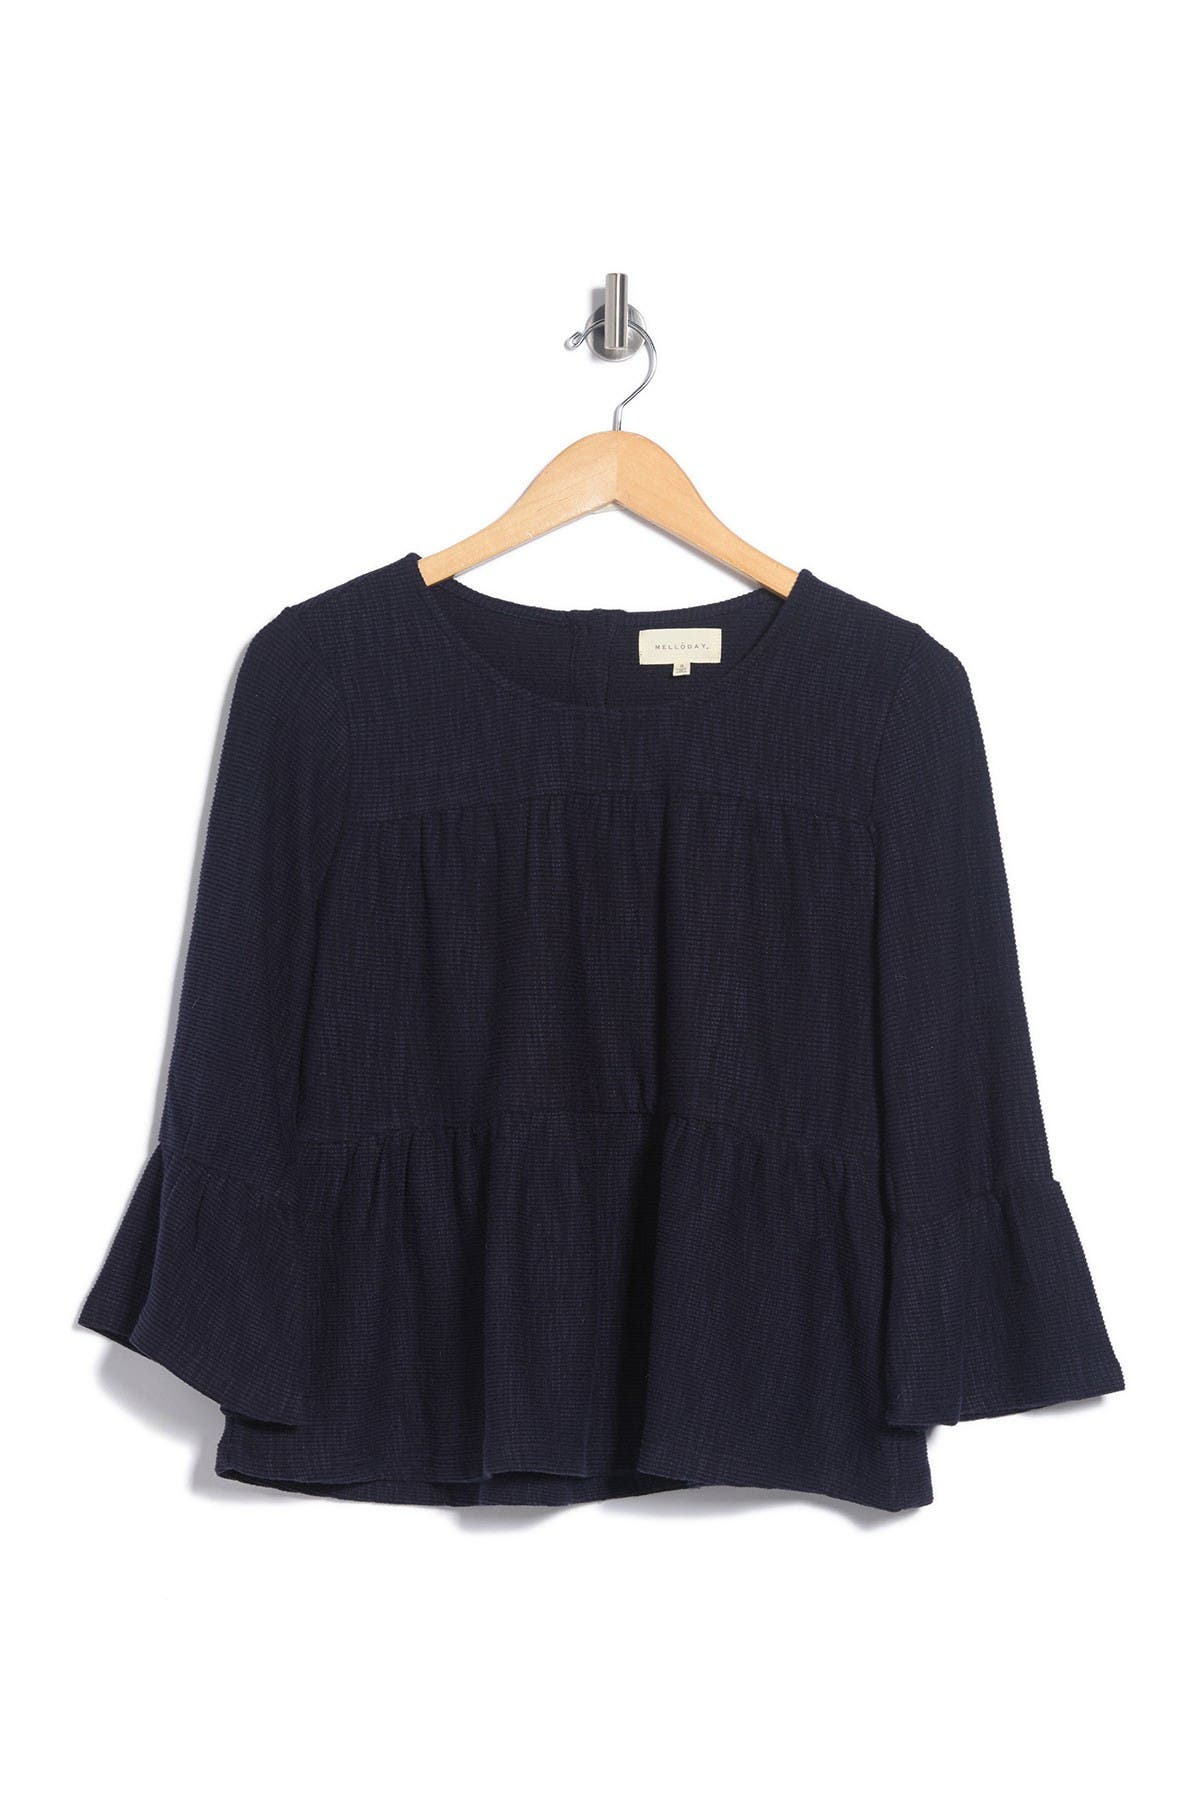 Image of MELLODAY Tiered Textured Back Button Back Knot T-Shirt